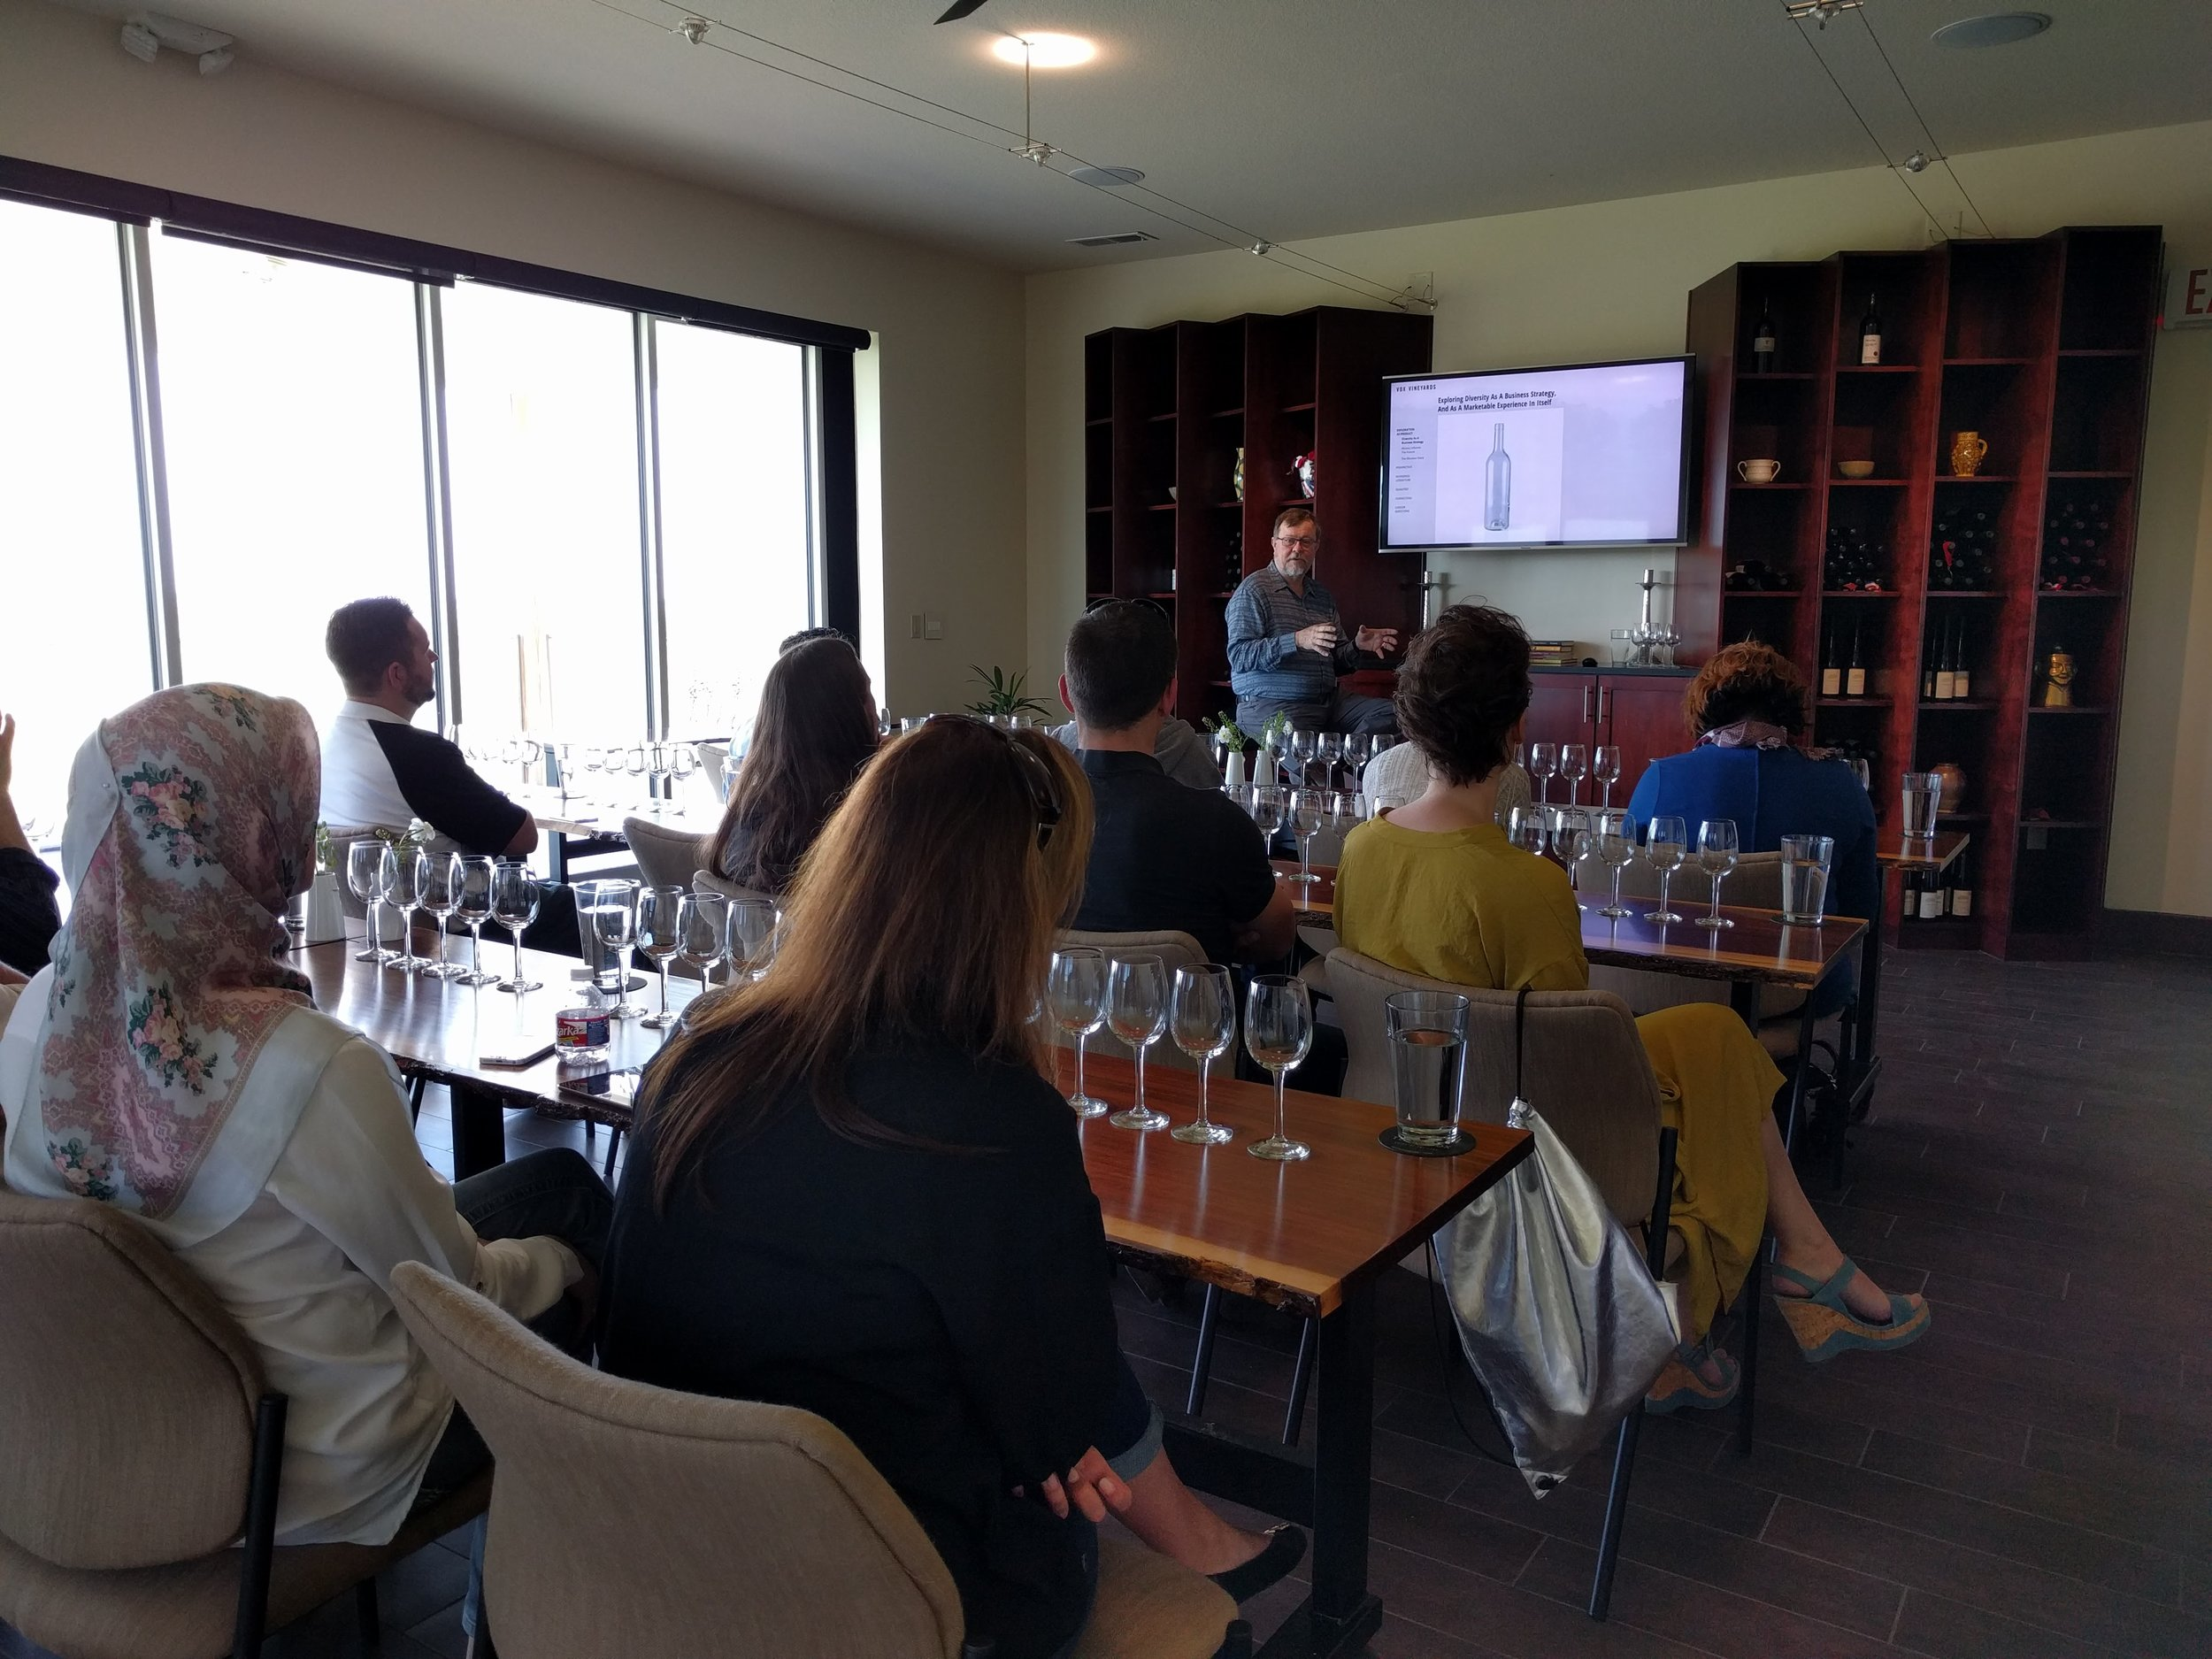 Educational - Learn about our vinicultural project, wine 101, and food pairing.